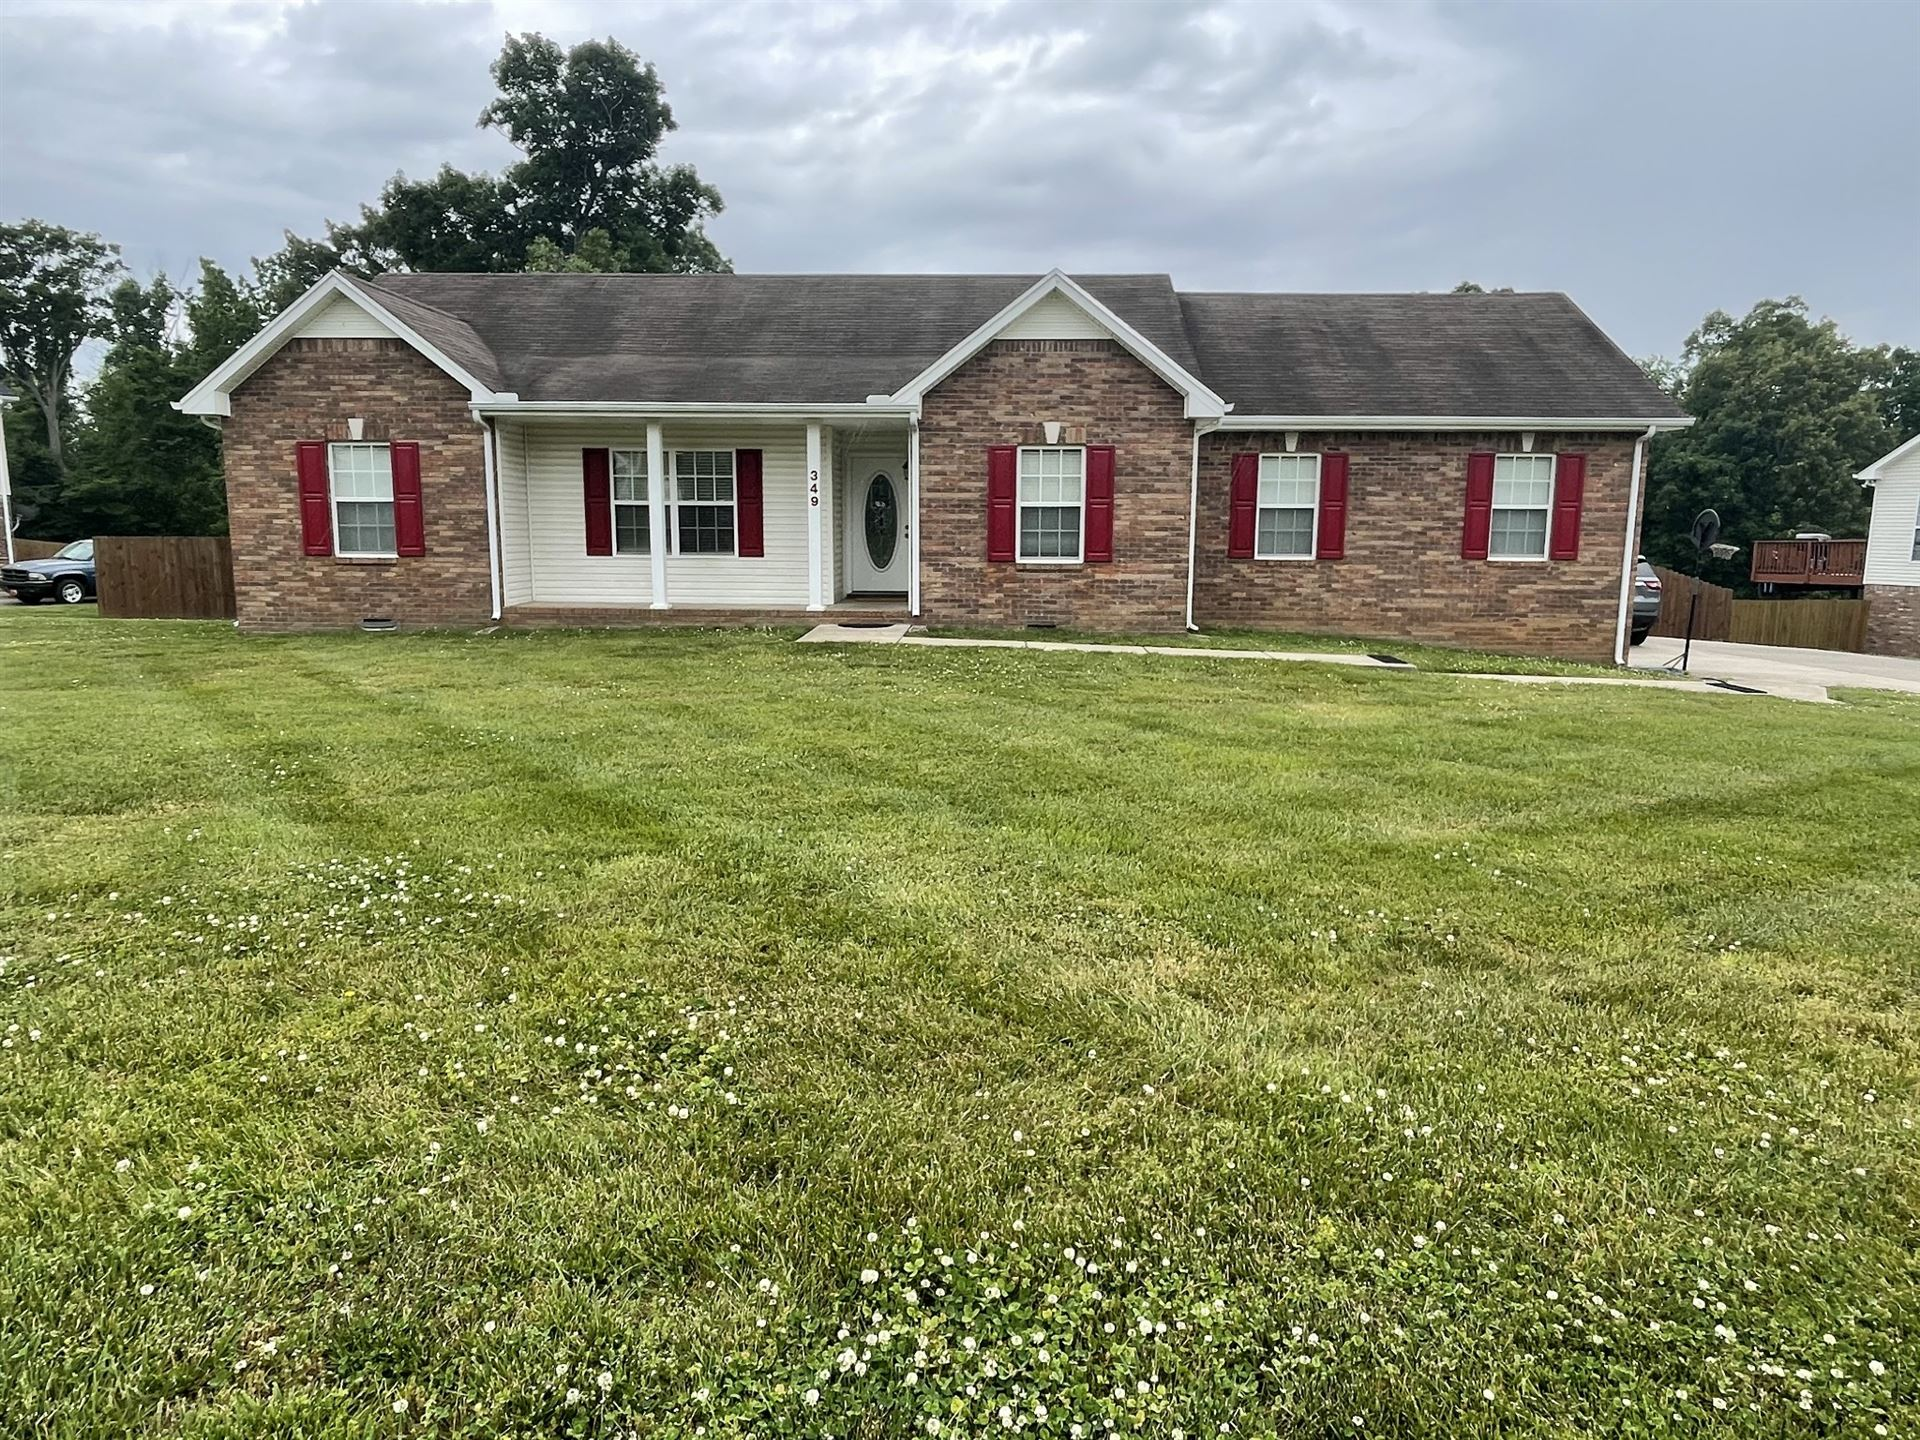 Photo of 349 Janet Dr, Pleasant View, TN 37146 (MLS # 2264475)